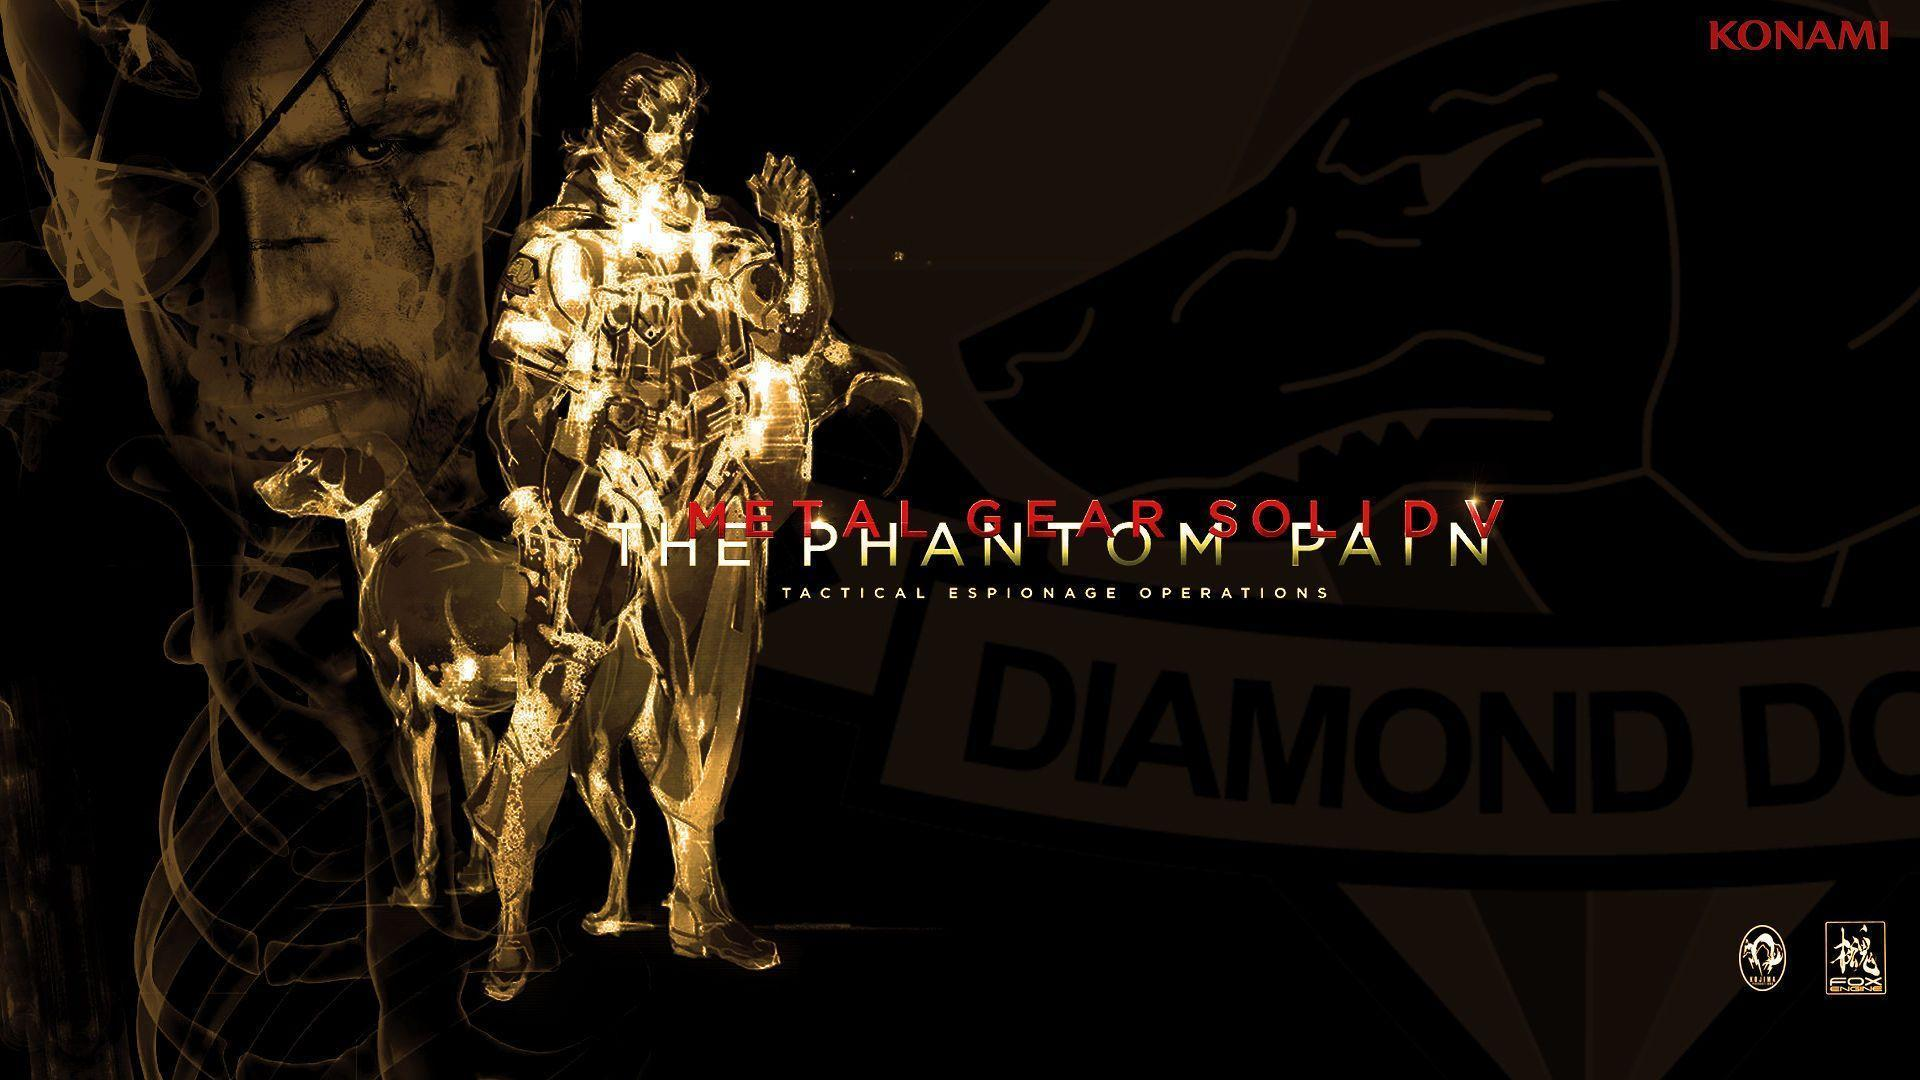 Metal Gear Phantom Pain Wallpaper - WallpaperSafari